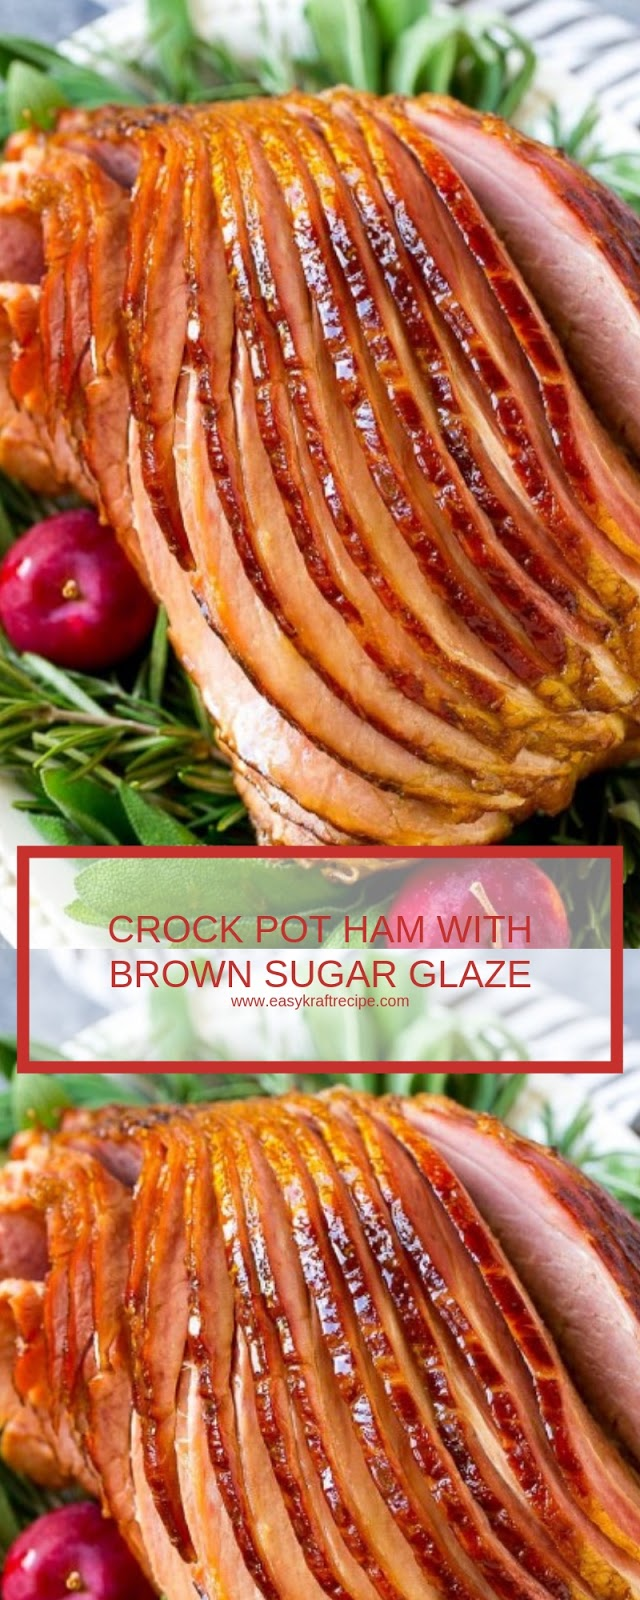 CROCK POT HAM WITH BROWN SUGAR GLAZE